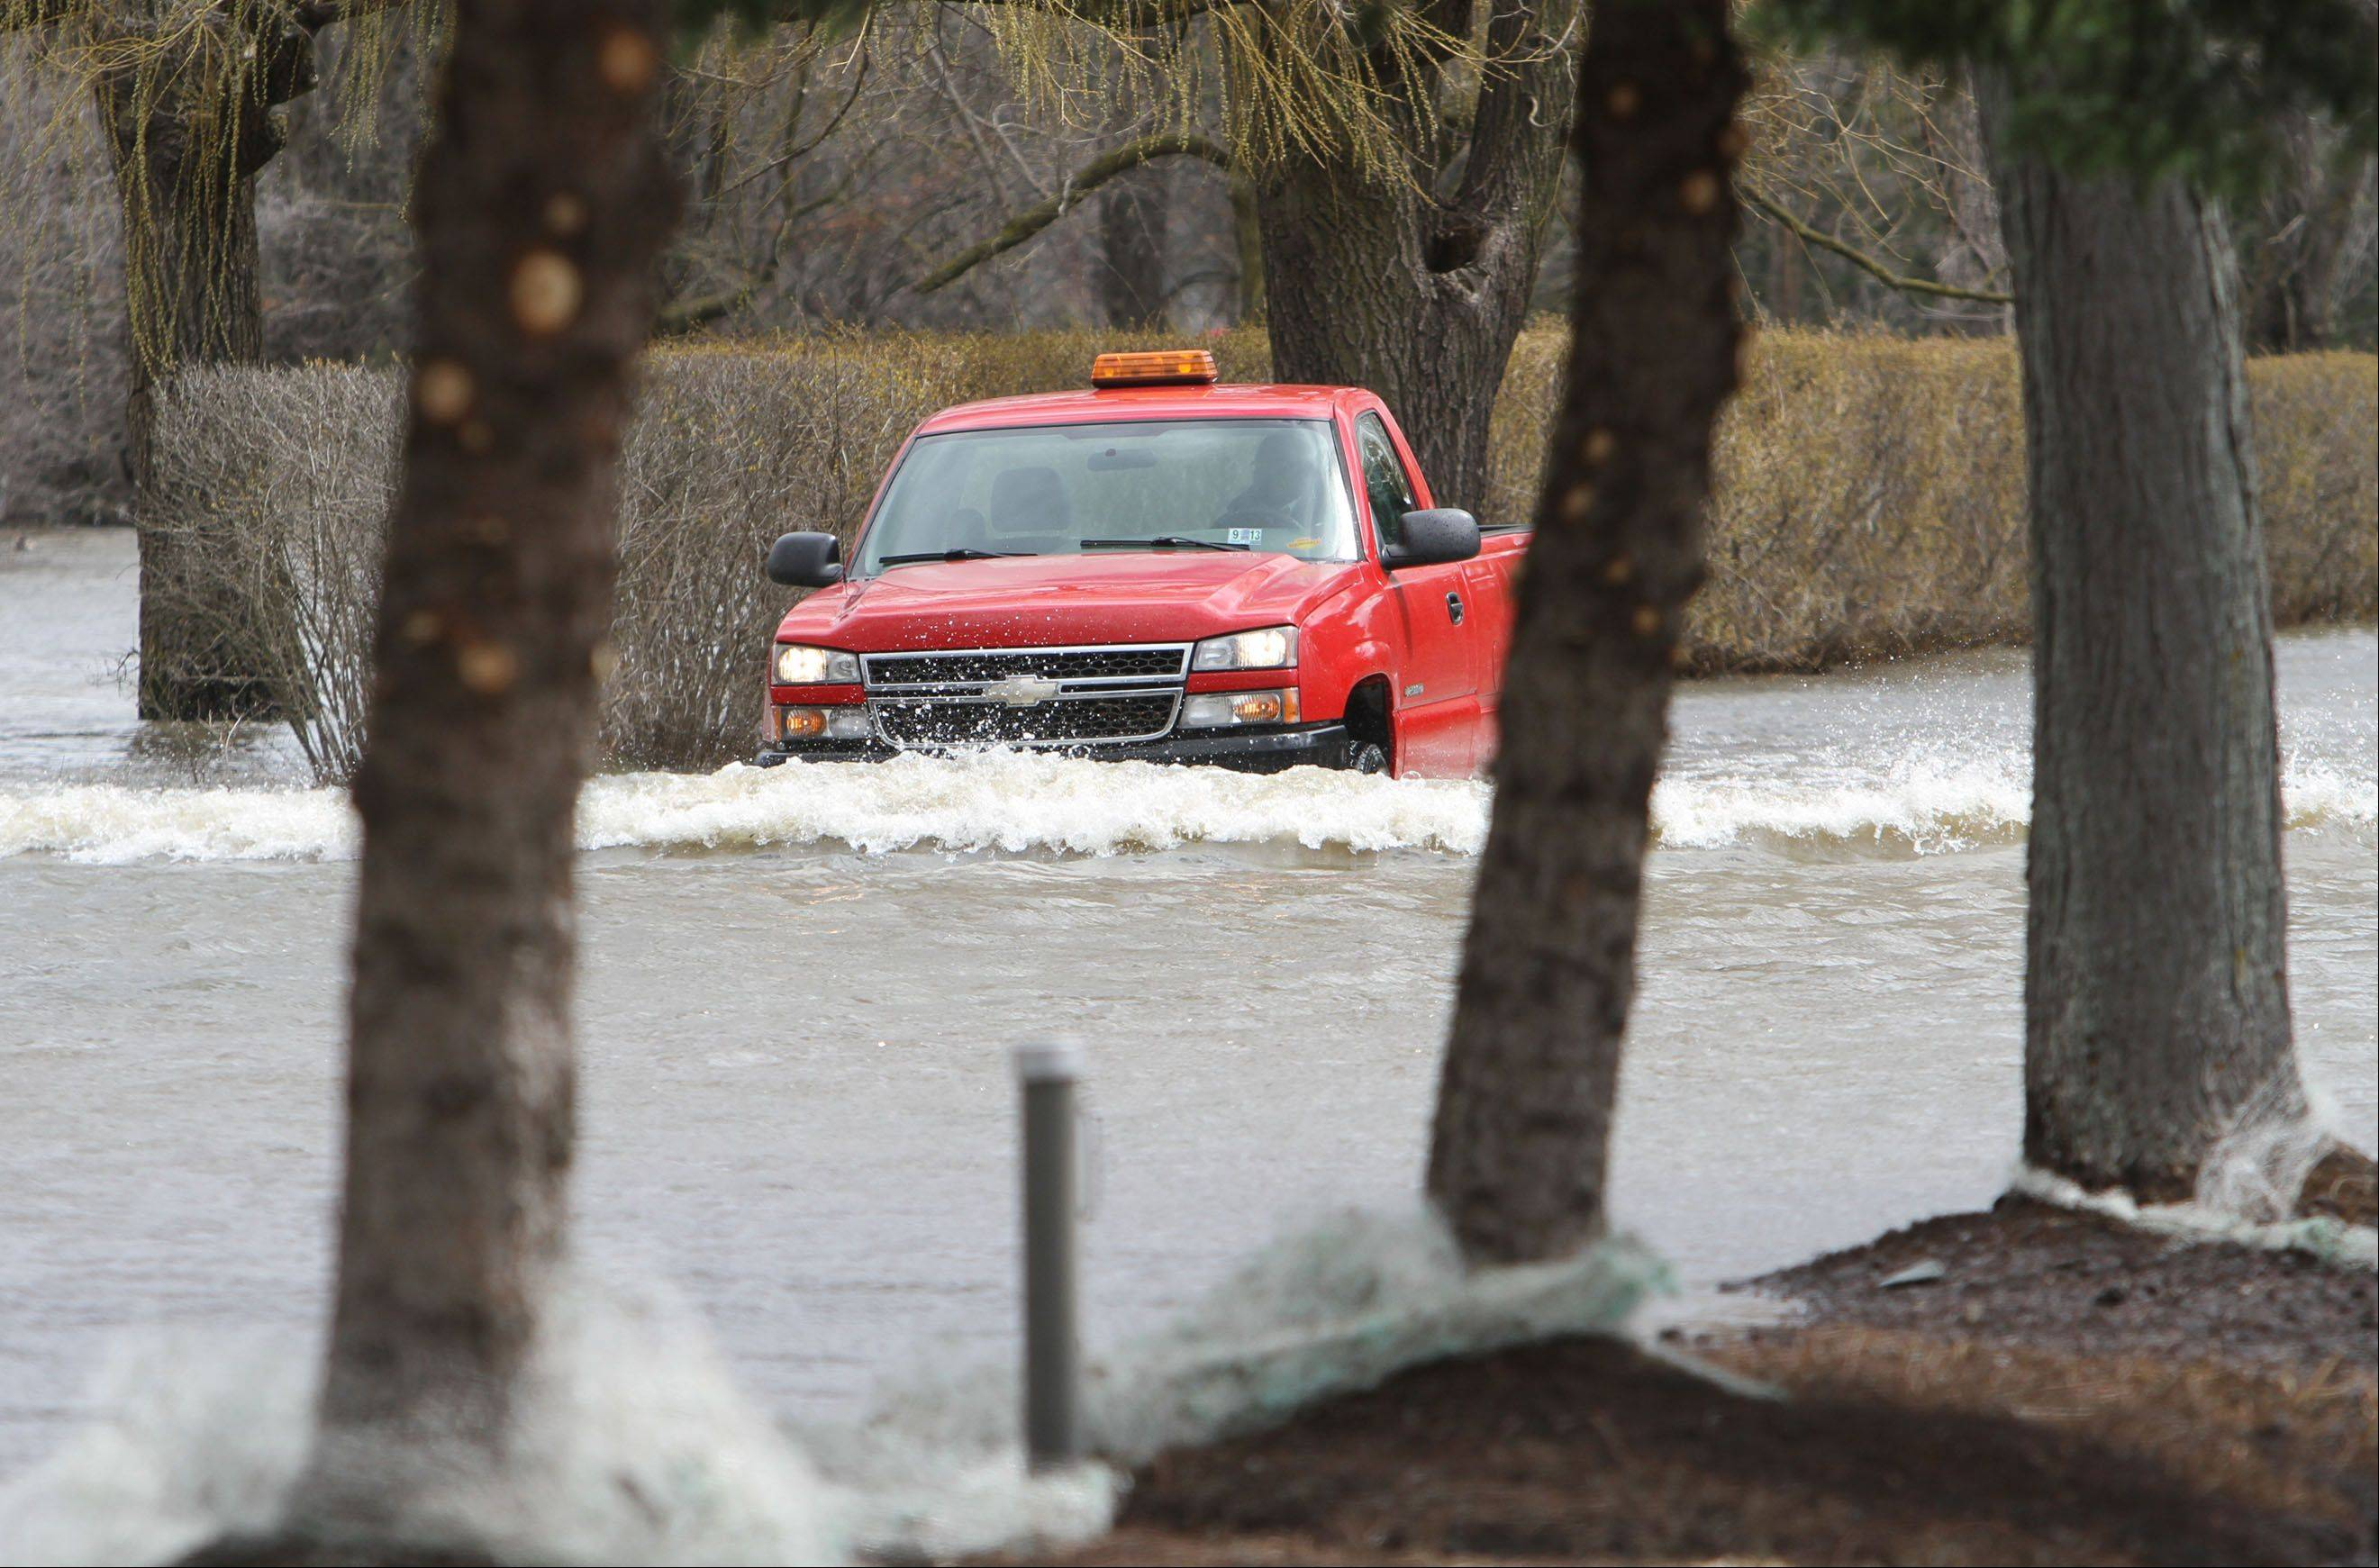 A truck exits the Lincolshire Marriott Resort Friday morning. The resort is closed due to flooding.